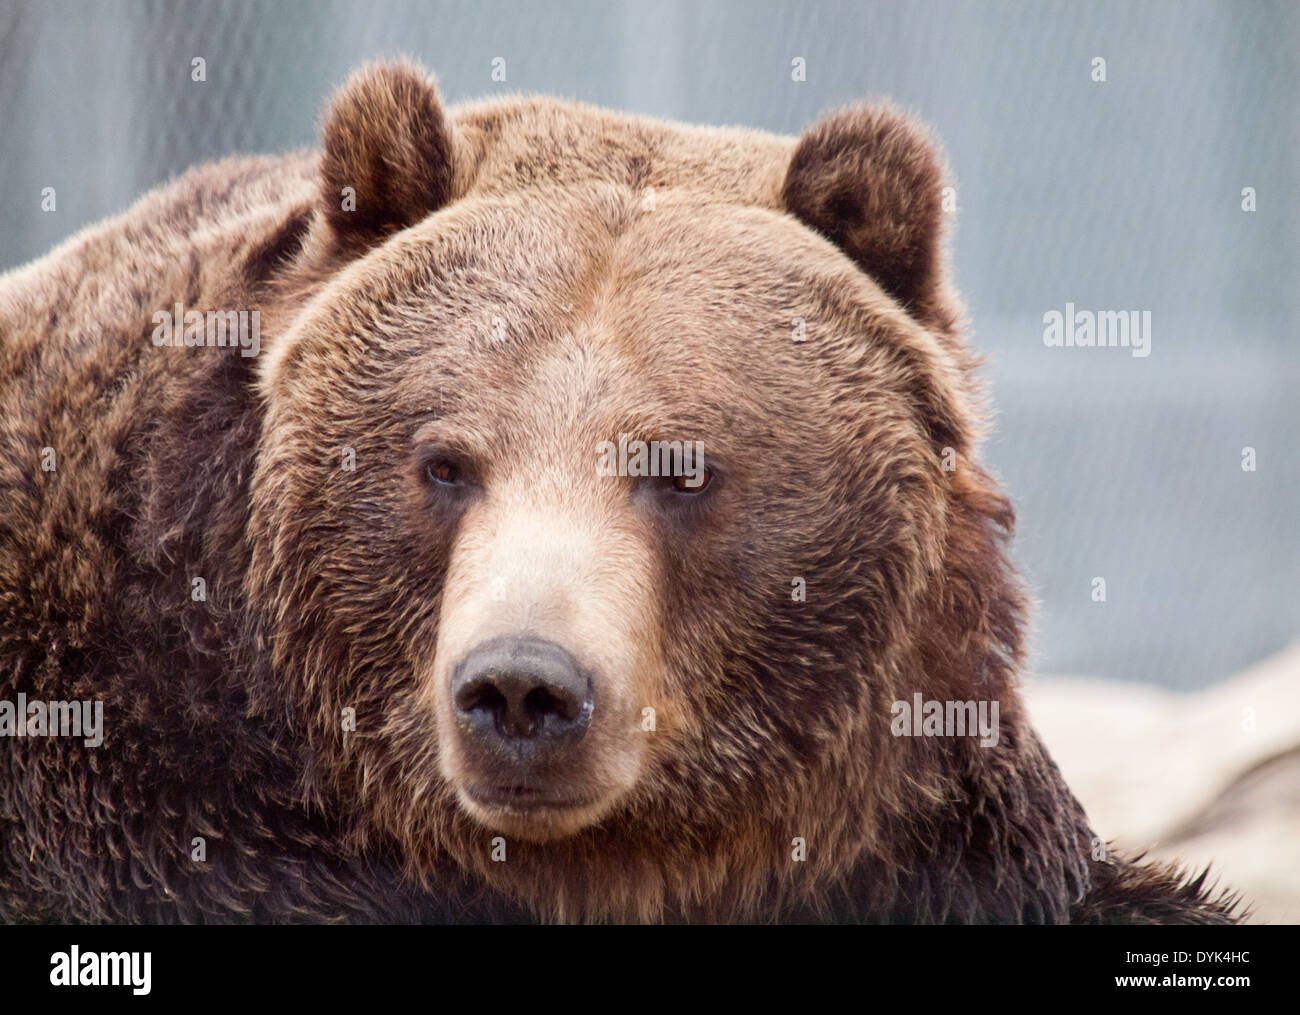 A portrait of an adult Grizzly Bear (Ursus arctos horribilis) in captivity at the Saskatoon Forestry Farm Park and Zoo. - Stock Image